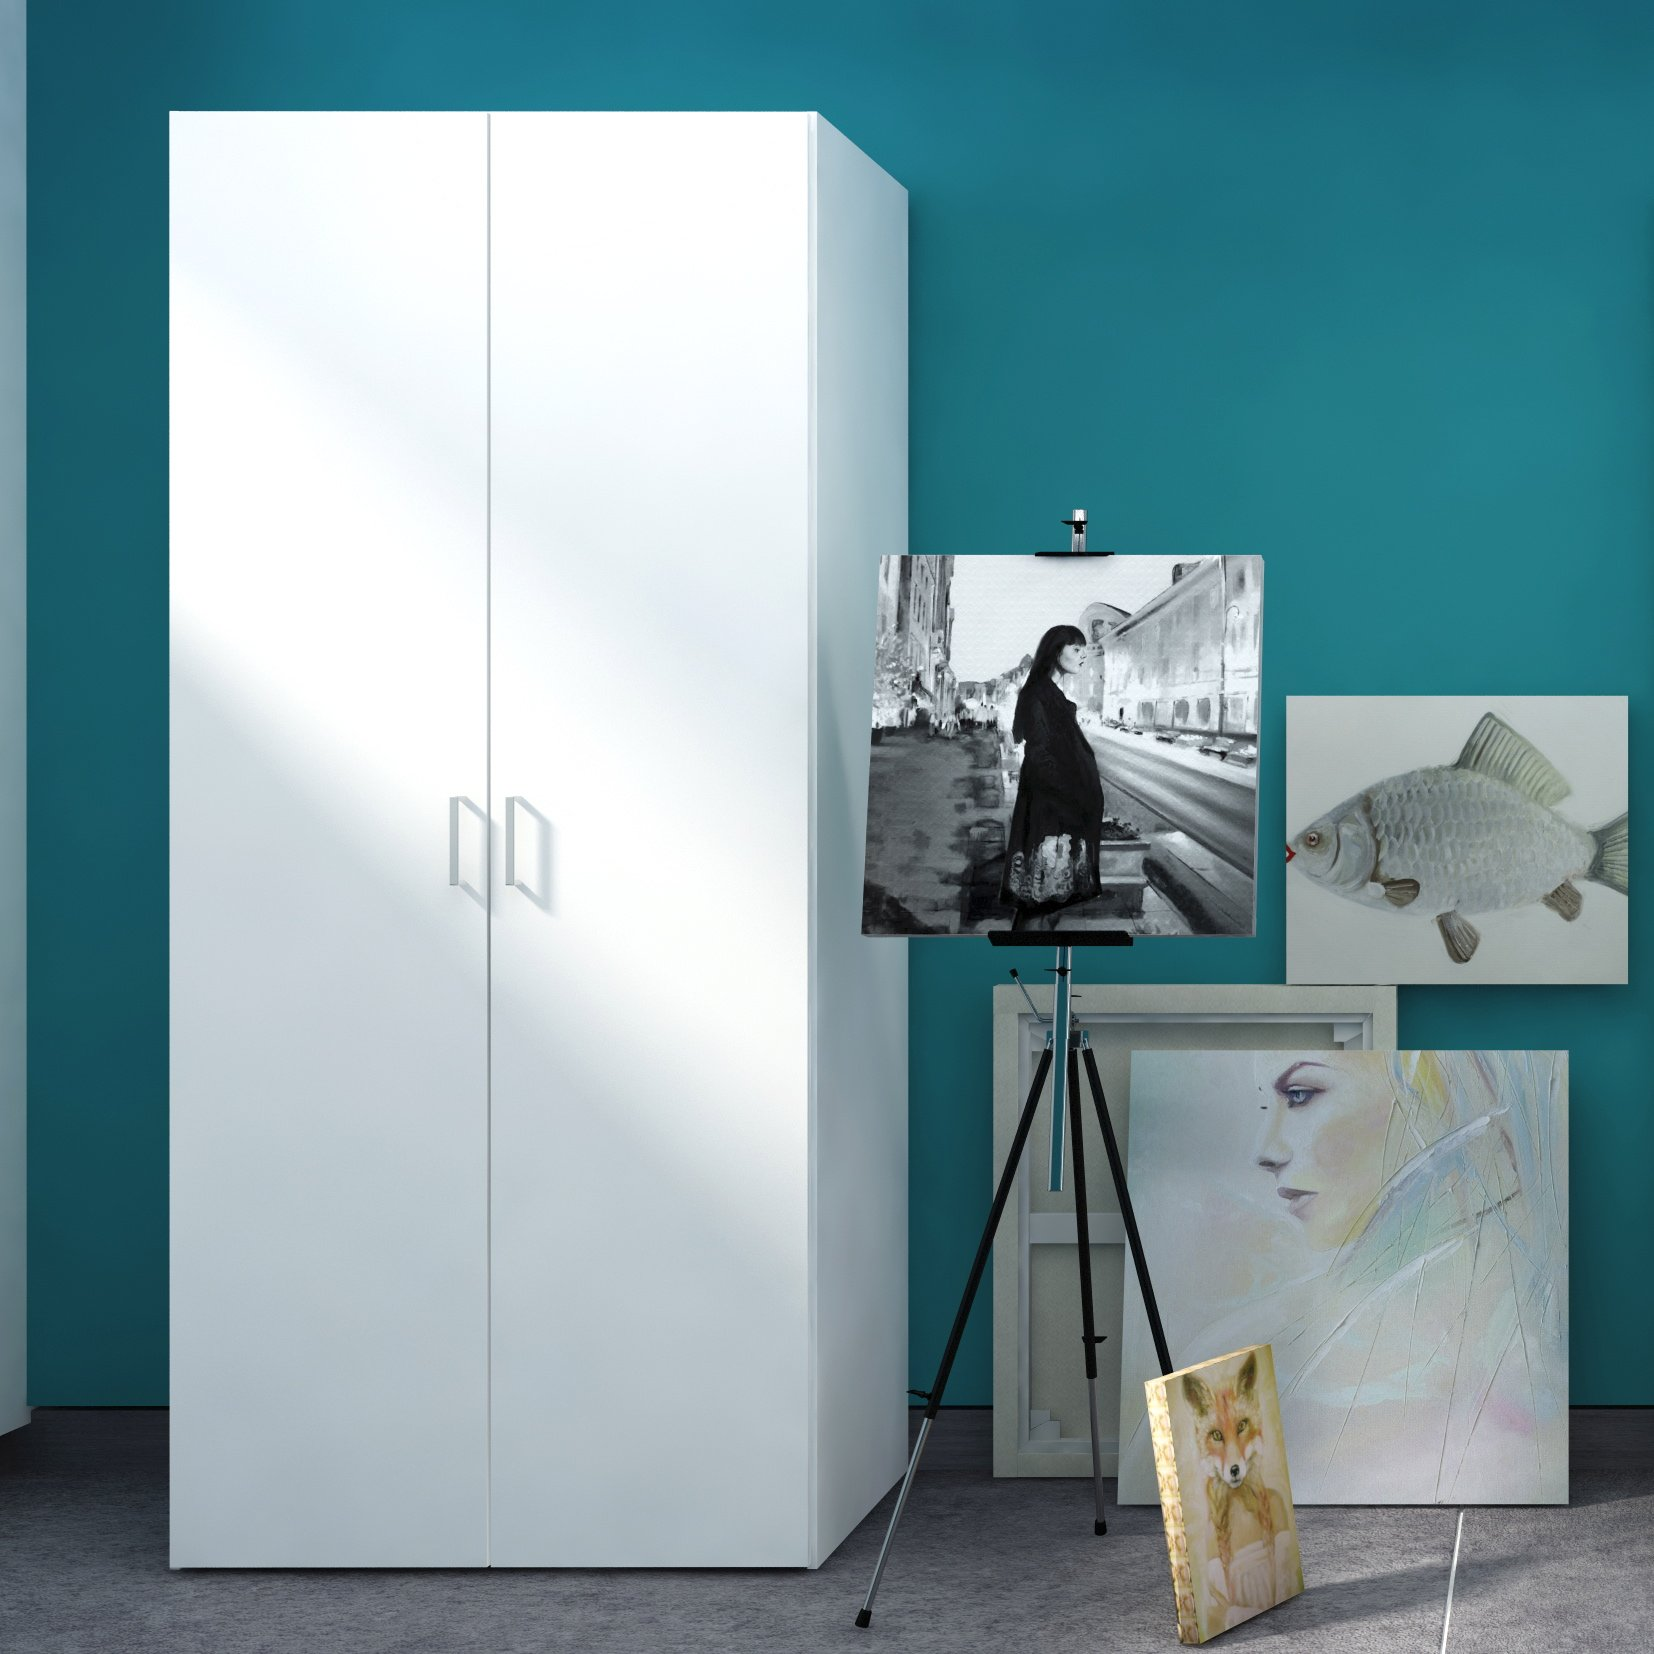 Tvilum 704174949 Space Wardrobe with with 2 Doors, White by Tvilum (Image #4)